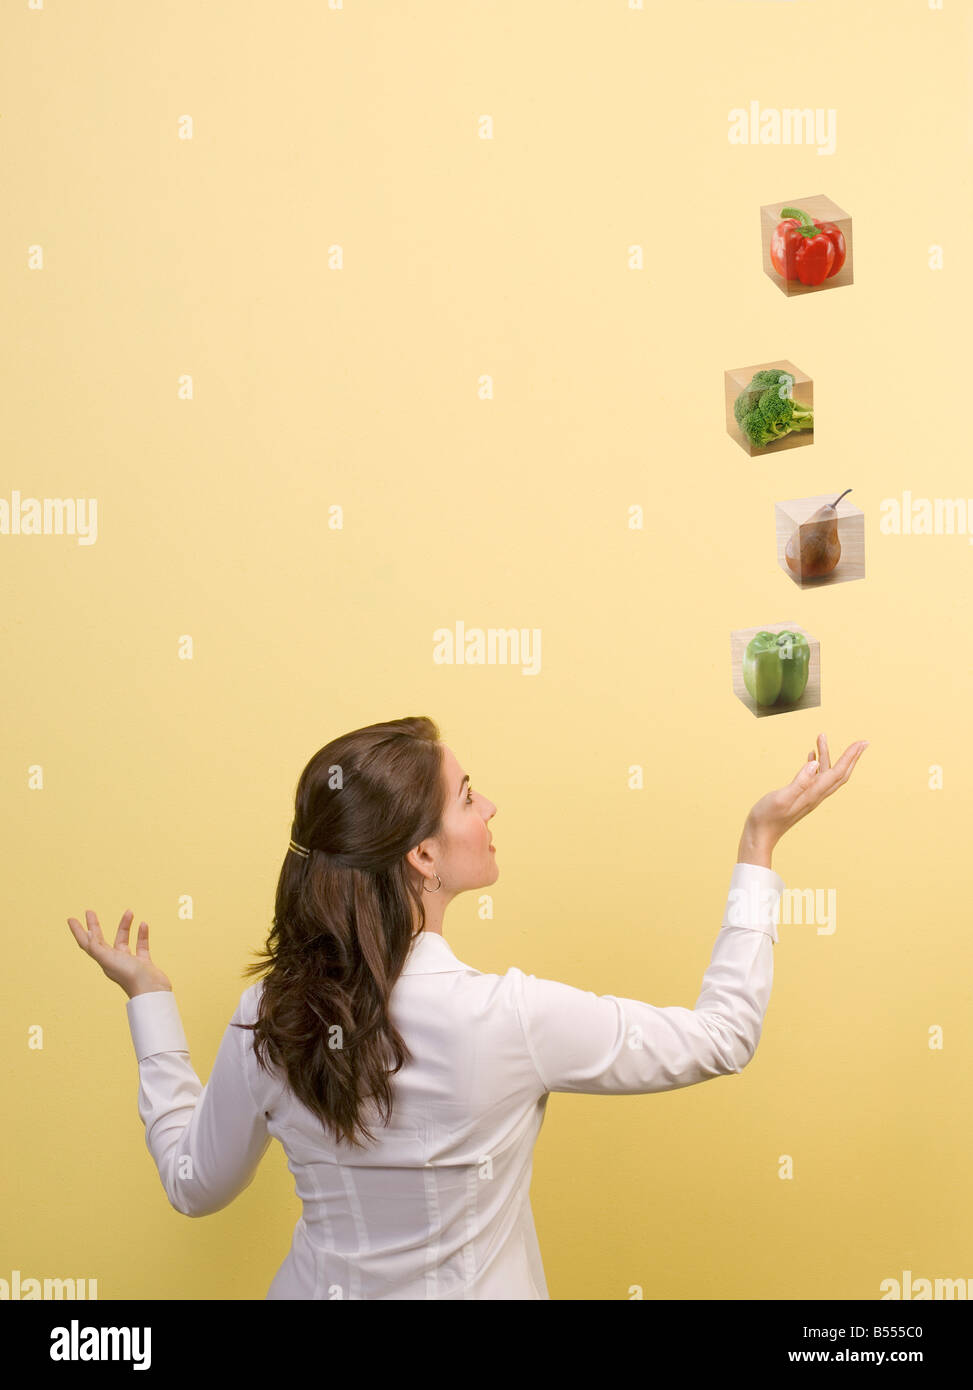 woman tosses food blocks in the air nutrition diet health eat - Stock Image